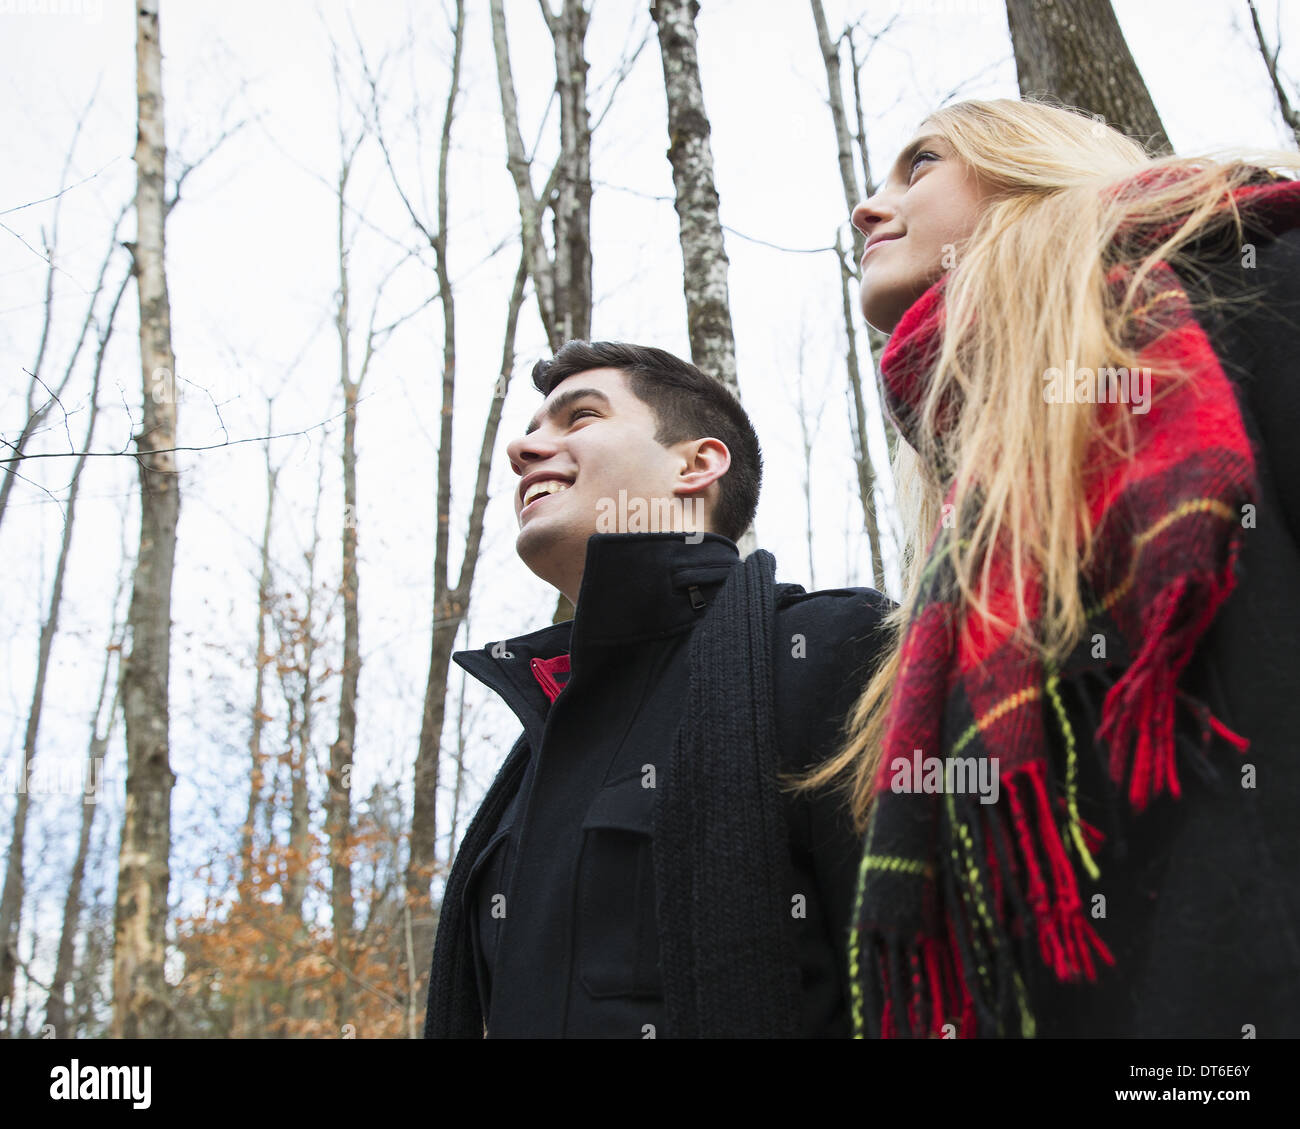 A couple in winter coats outdoors on a winter's day. - Stock Image